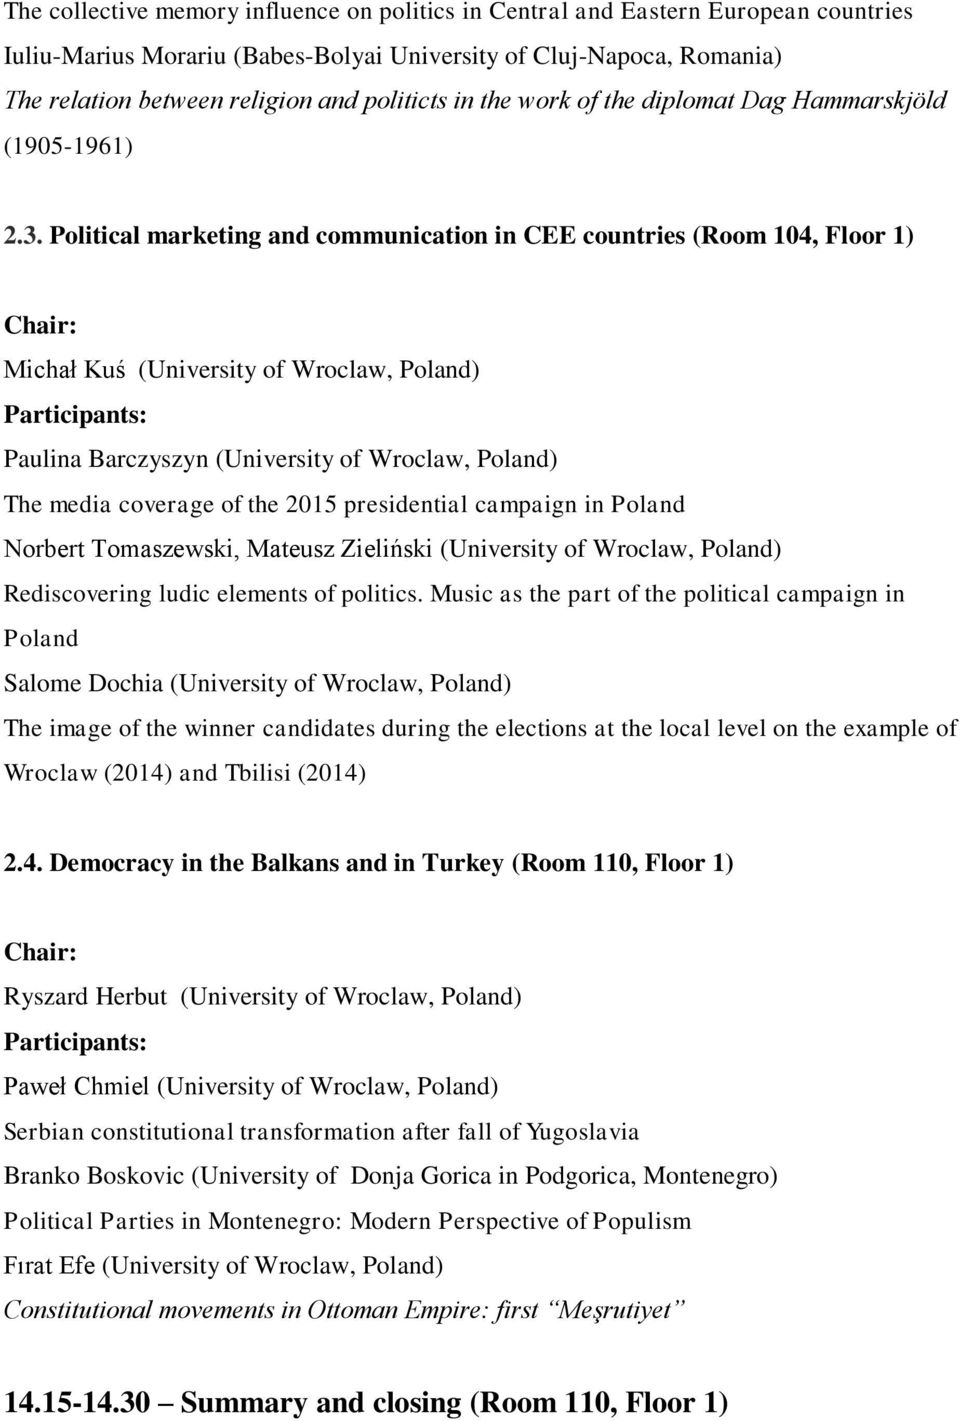 Political marketing and communication in CEE countries (Room 104, Floor 1) Michał Kuś (University of Wroclaw, Poland) Paulina Barczyszyn (University of Wroclaw, Poland) The media coverage of the 2015